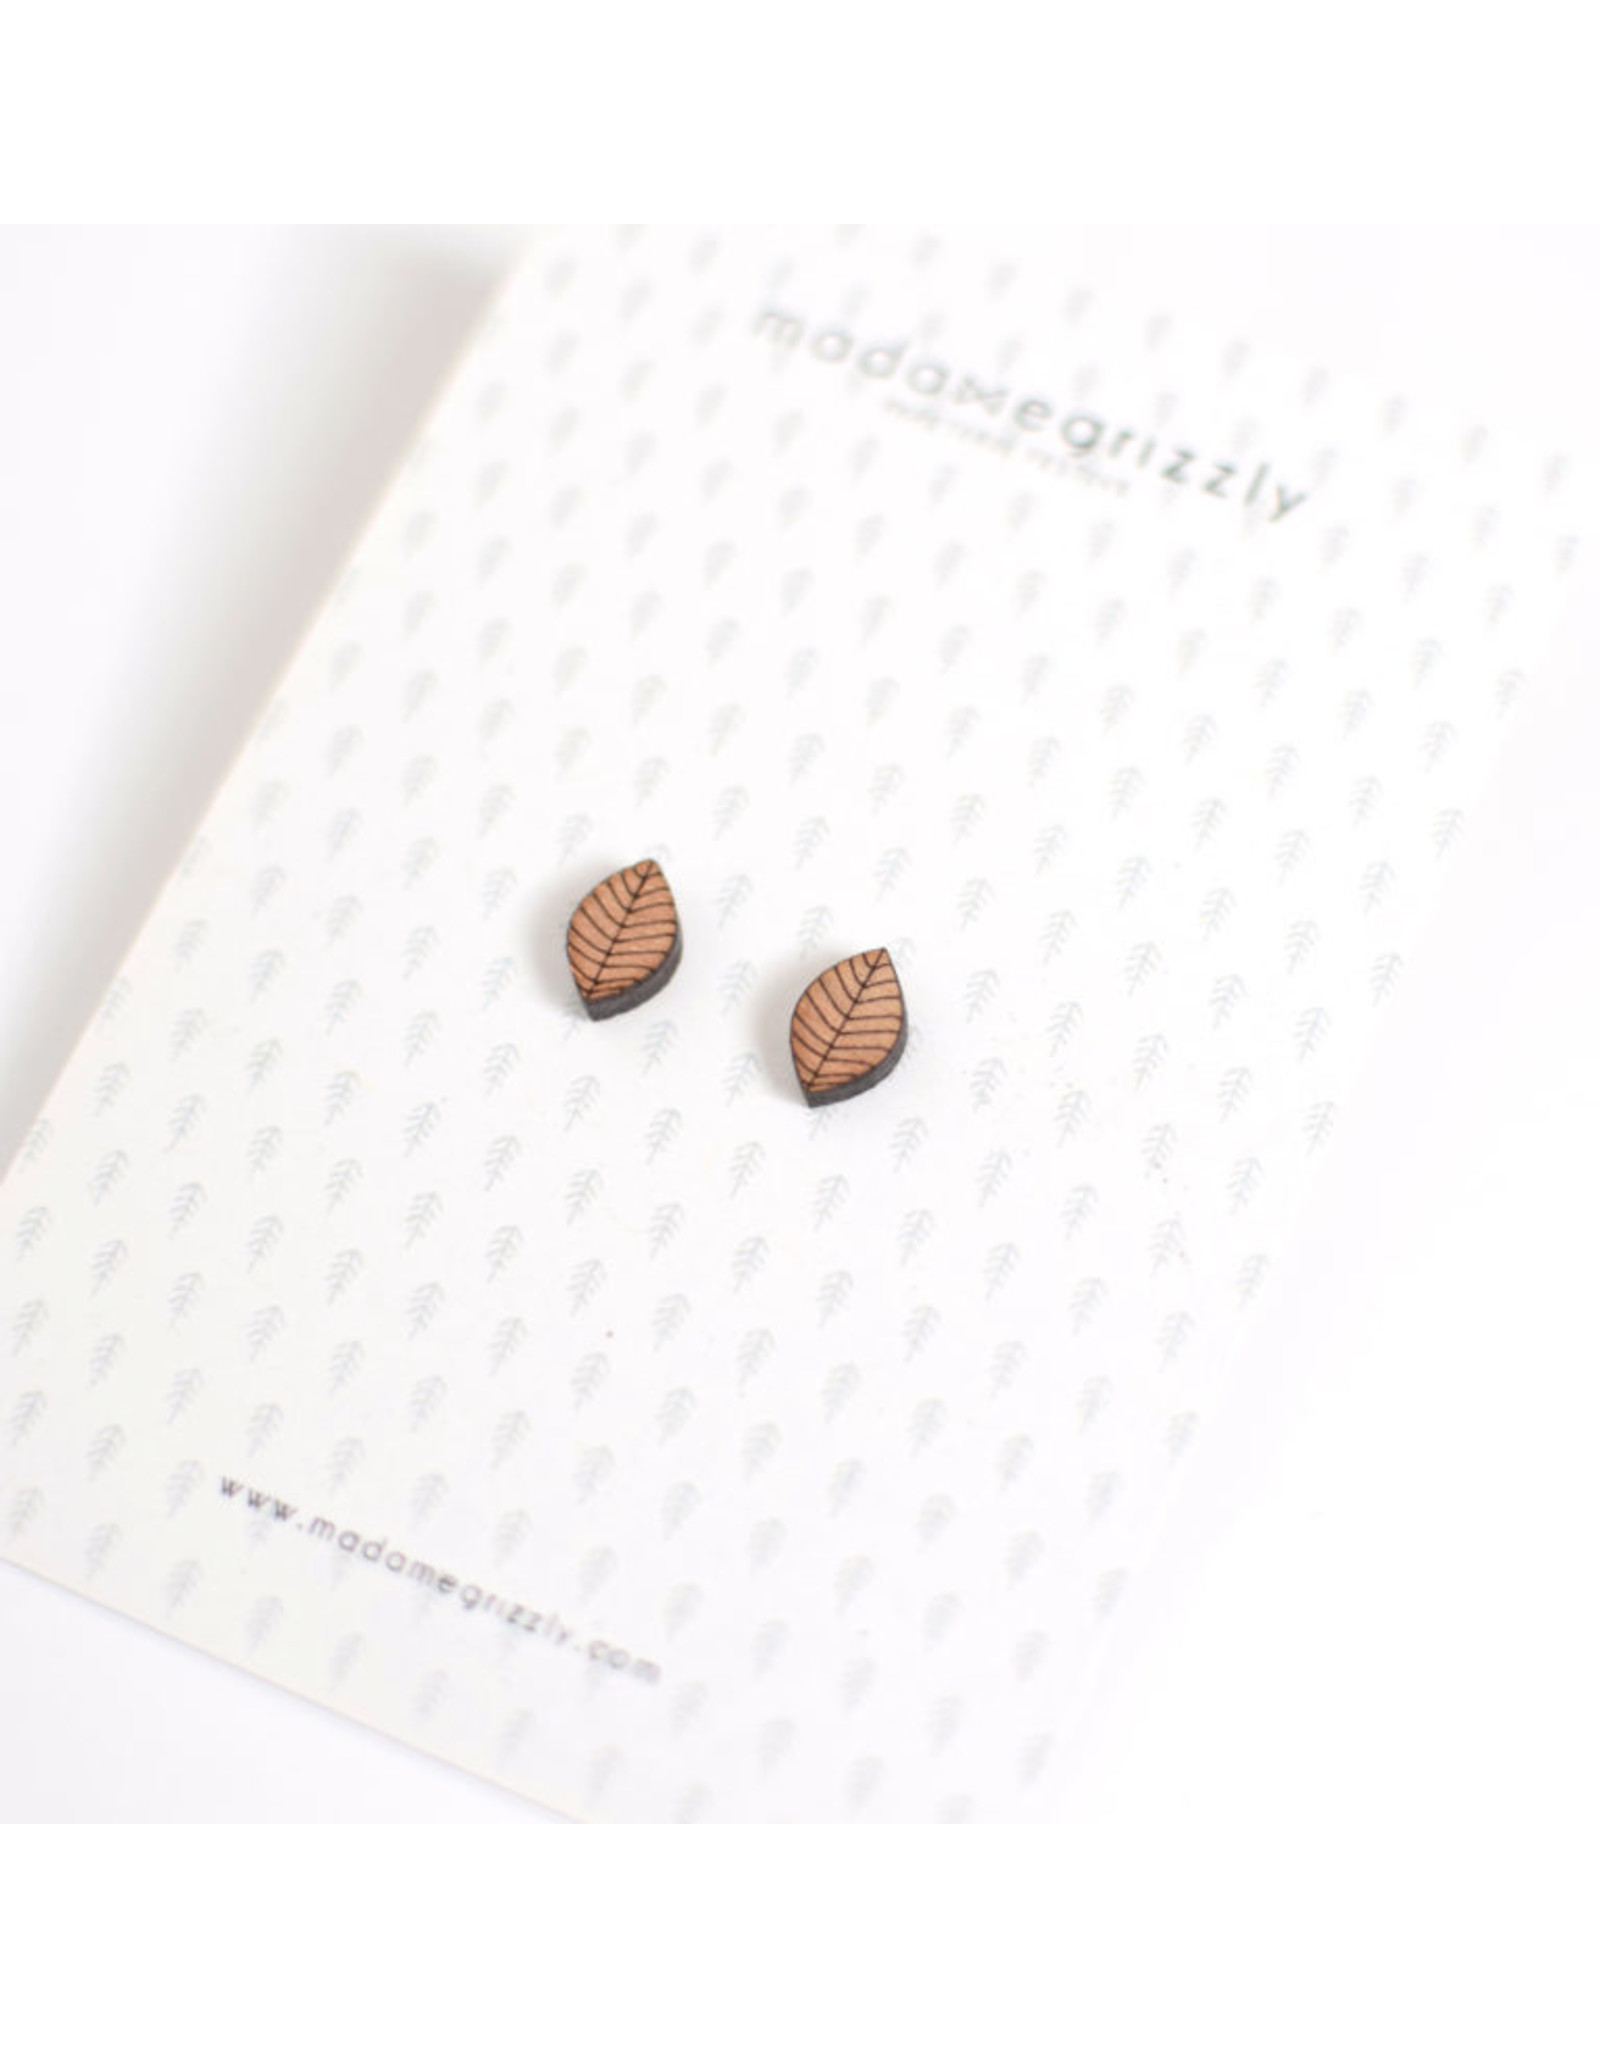 Madame grizzly boucles d'oreilles feuille